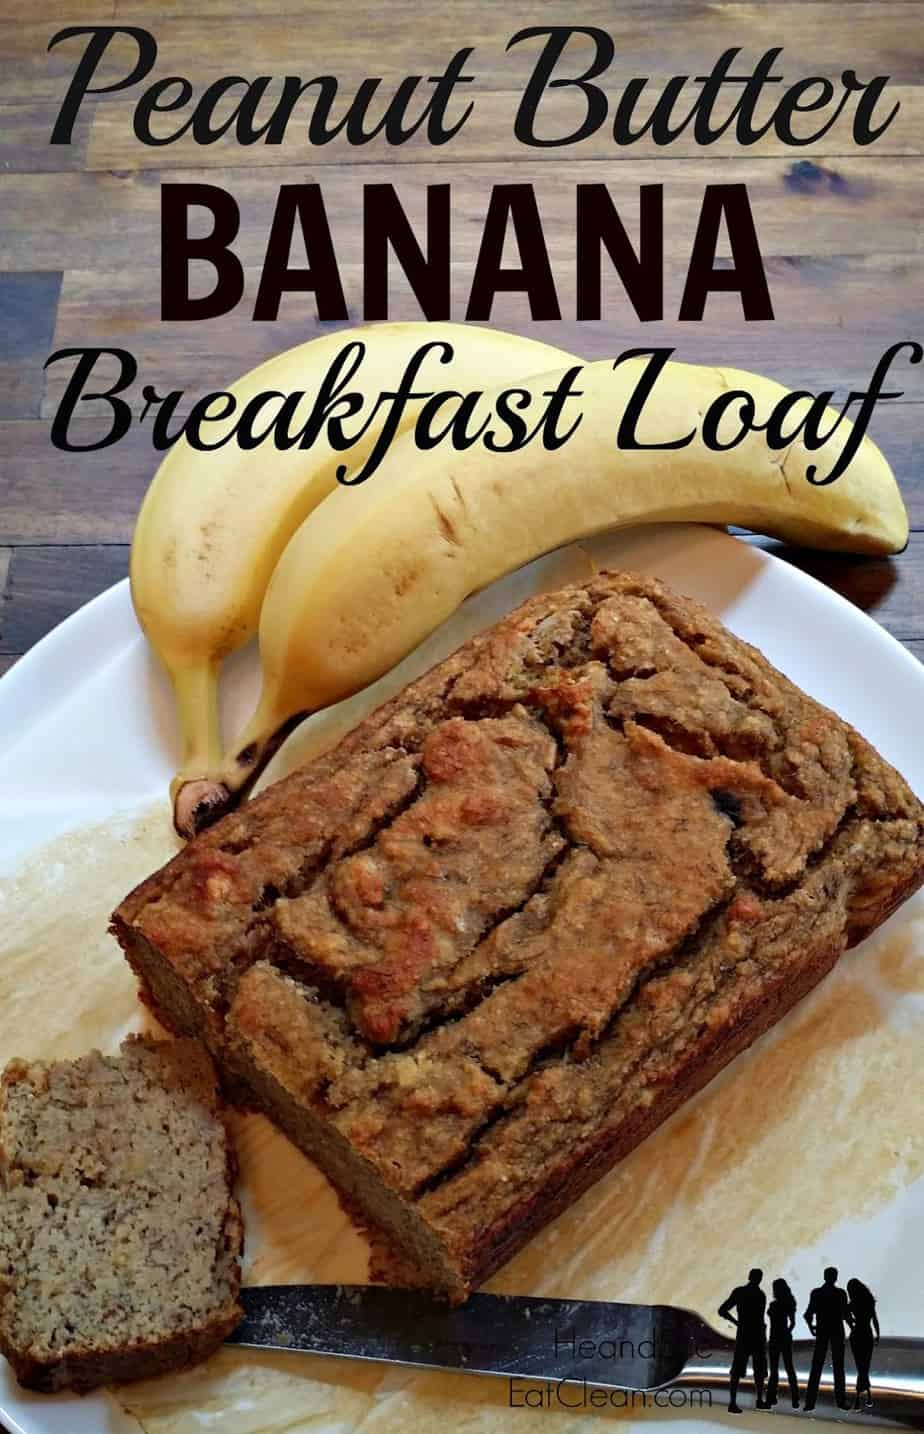 Peanut_Butter_Can_Be_Made_With_Almond_Sun_SunButter_Banana_Bread_Breakfast_Loaf_High_Protein_Healthy_Fats_He_She_Eat_Clean_1